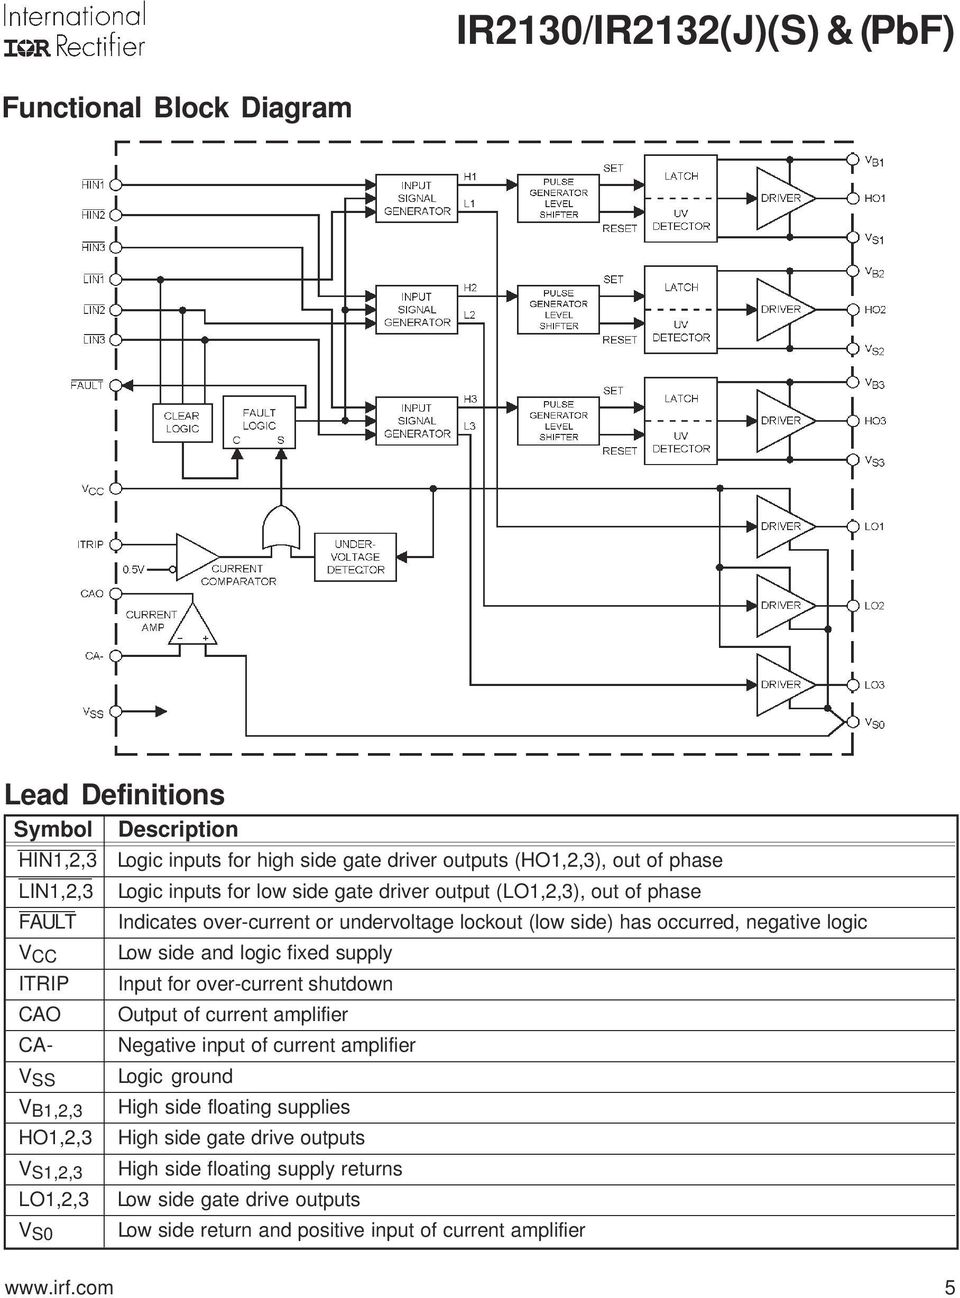 Ir2130 Ir2132js Pbf Pdf Ir2110 High Speed Power Mosfet Lead Assignments And Datasheet Fixed Supply Itrip Input For Over Current Shutdown Cao Output Of Amplifier Ca